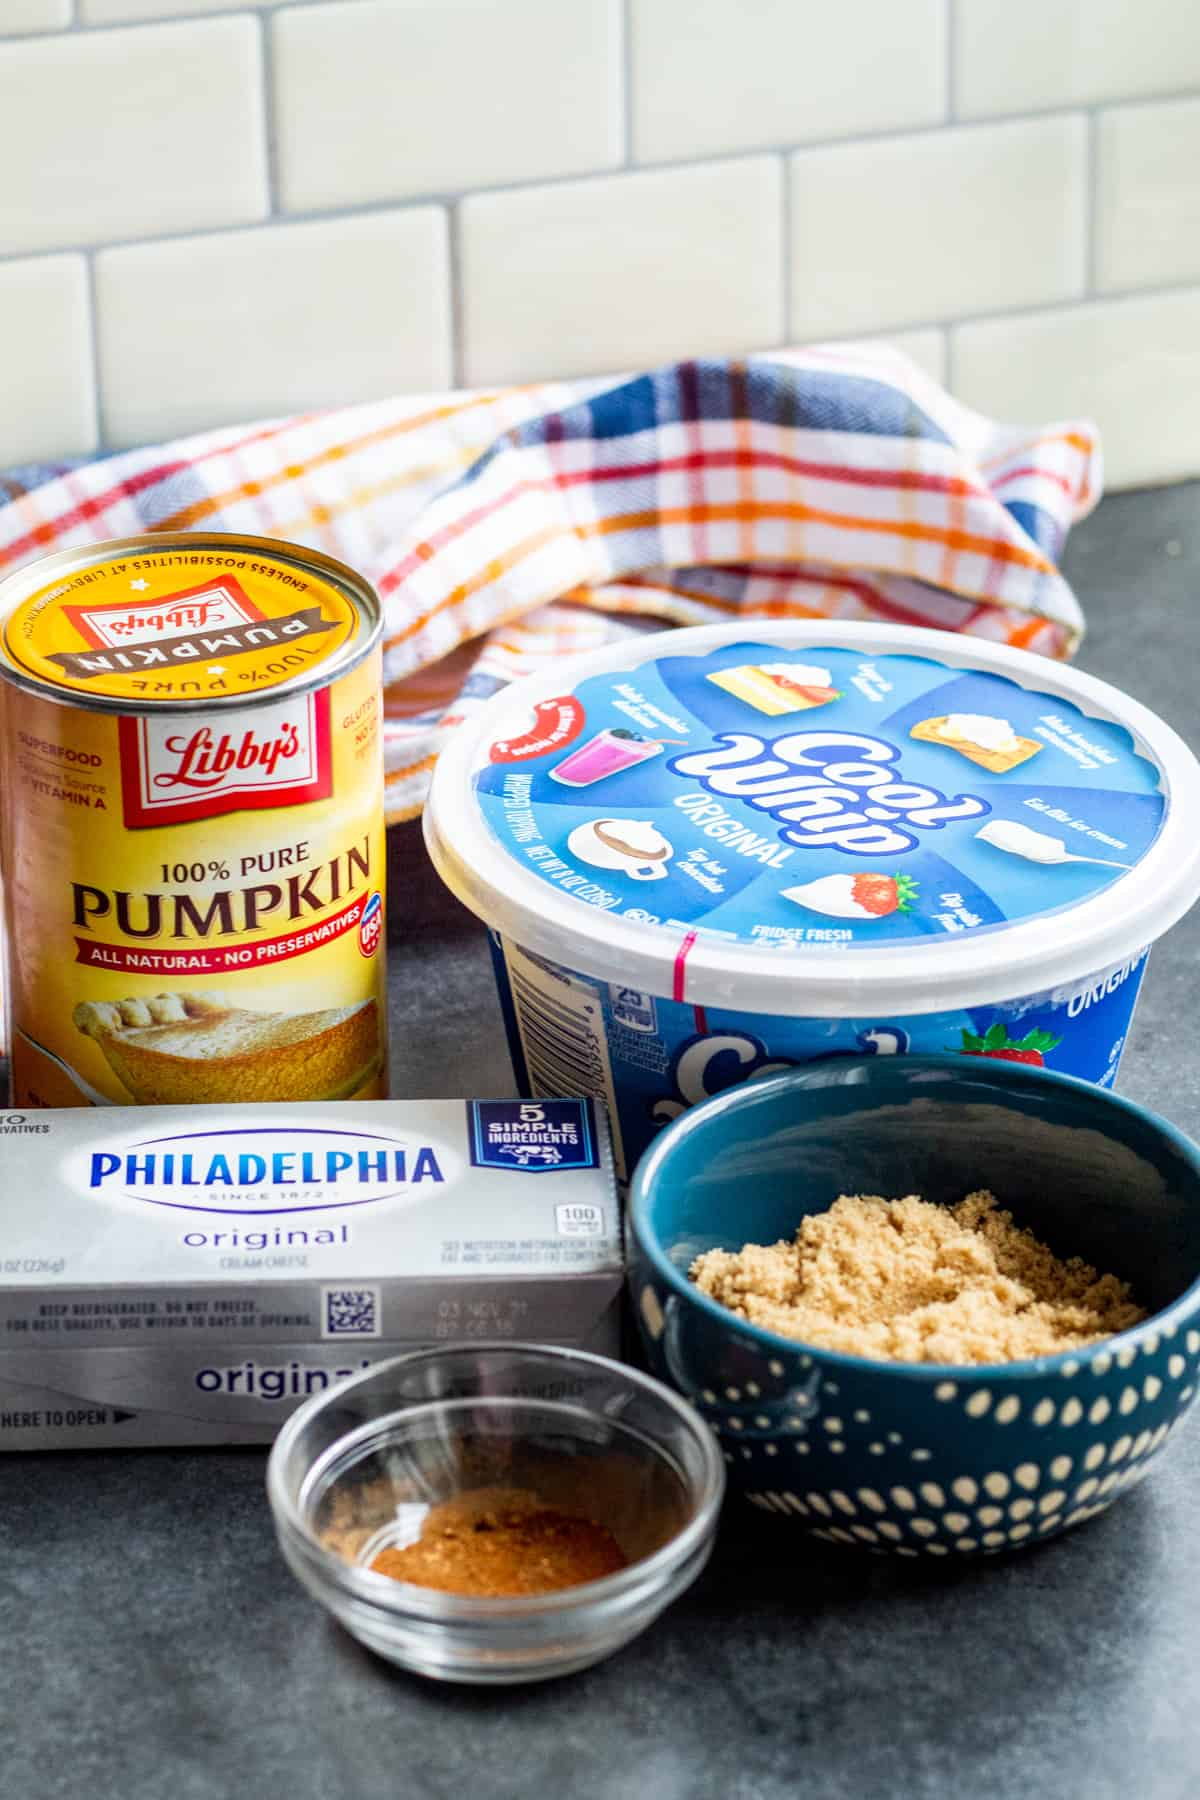 Pumpkin dip ingredients laid out on blue counter.